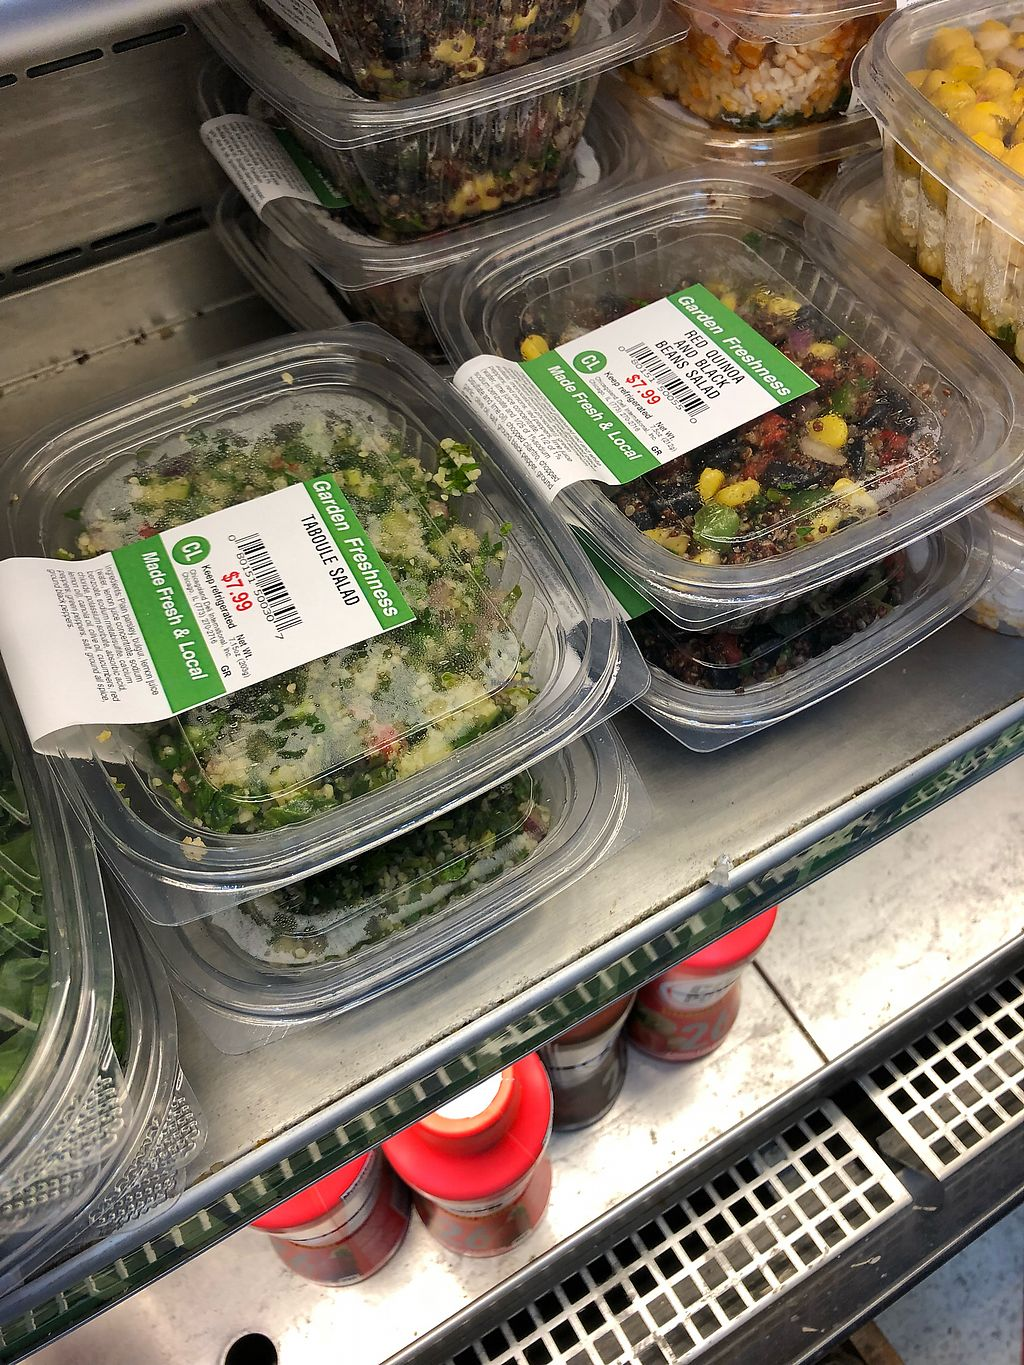 """Photo of Fresh Market on the Go - Airport  by <a href=""""/members/profile/Knauji82"""">Knauji82</a> <br/>Salad <br/> April 18, 2018  - <a href='/contact/abuse/image/105152/387425'>Report</a>"""